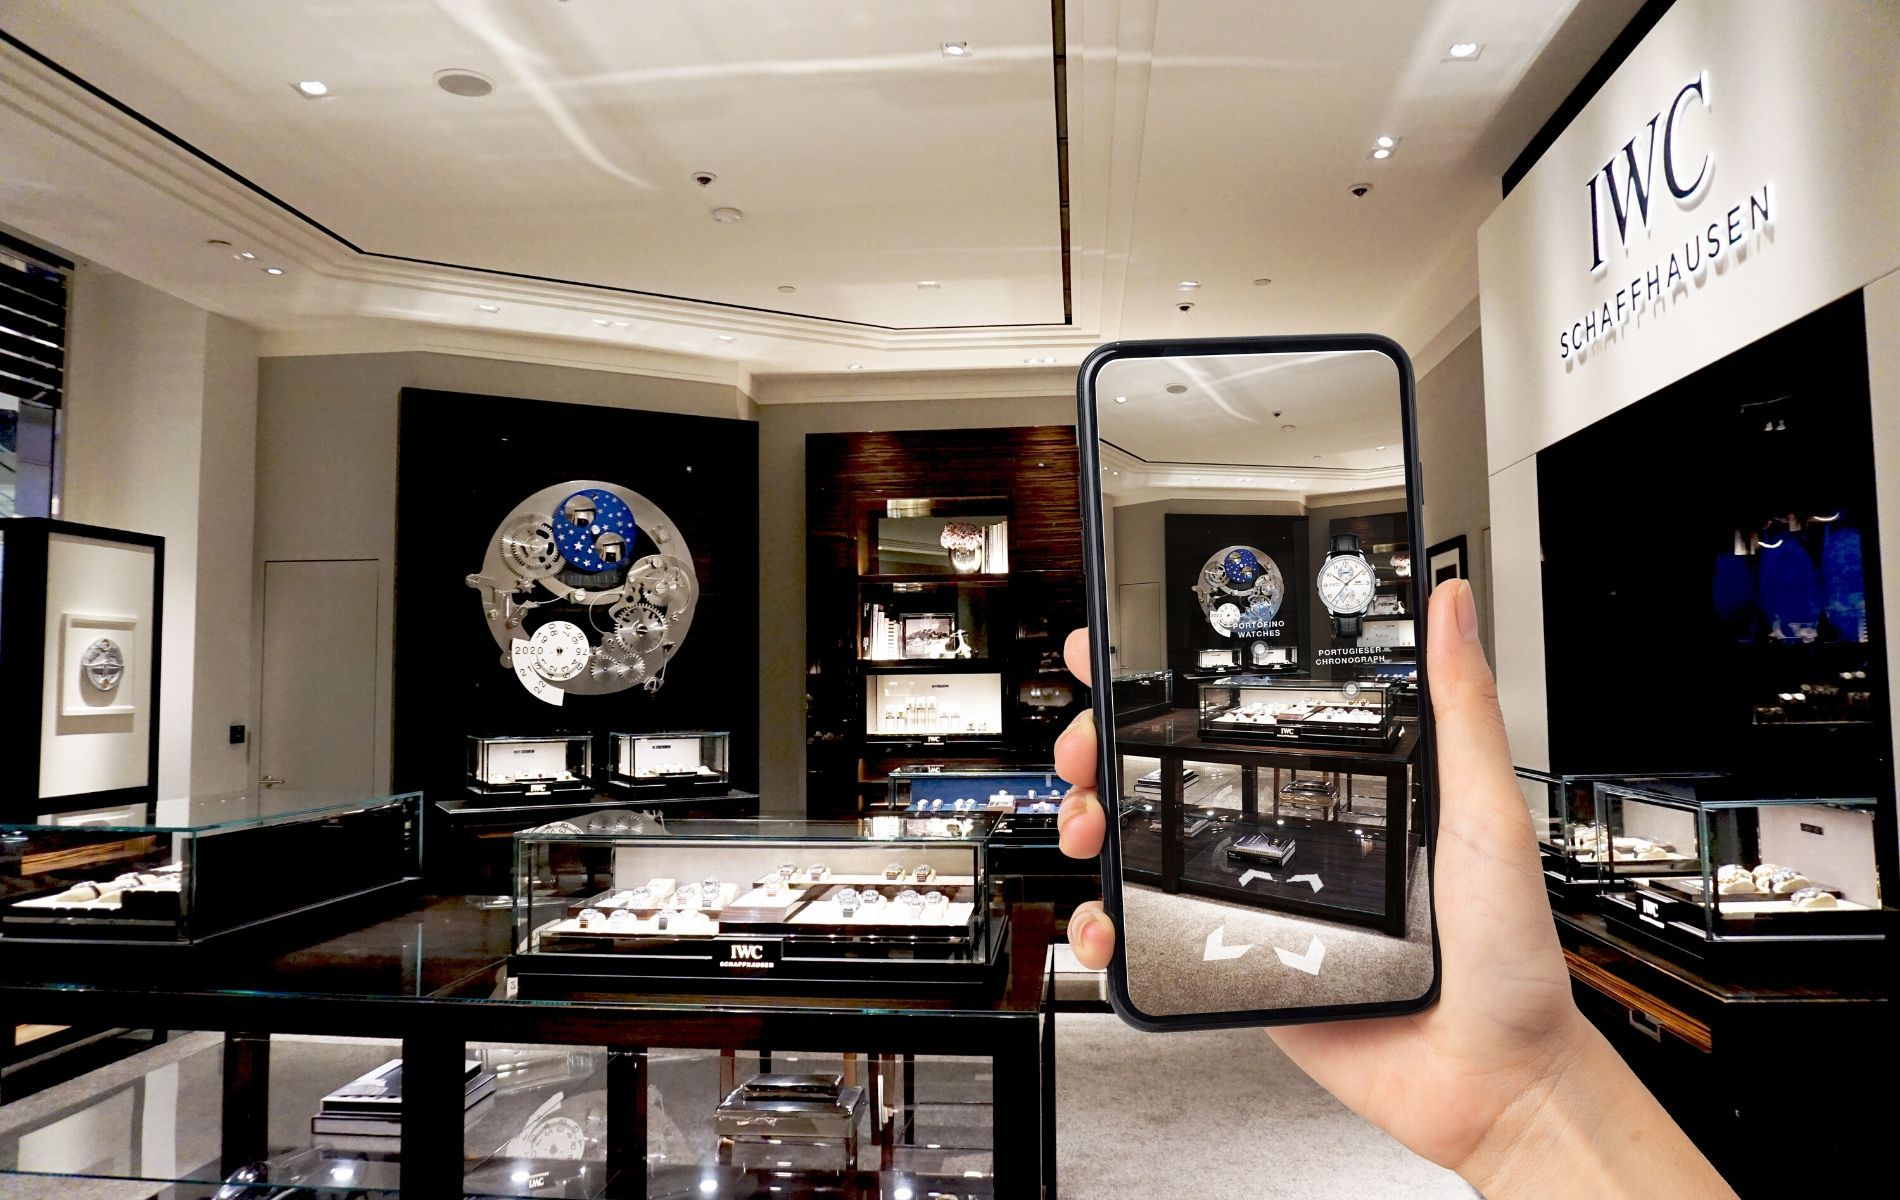 #SocialDistancing: Shop At IWC Schaffhausen's Virtual Reality Boutique